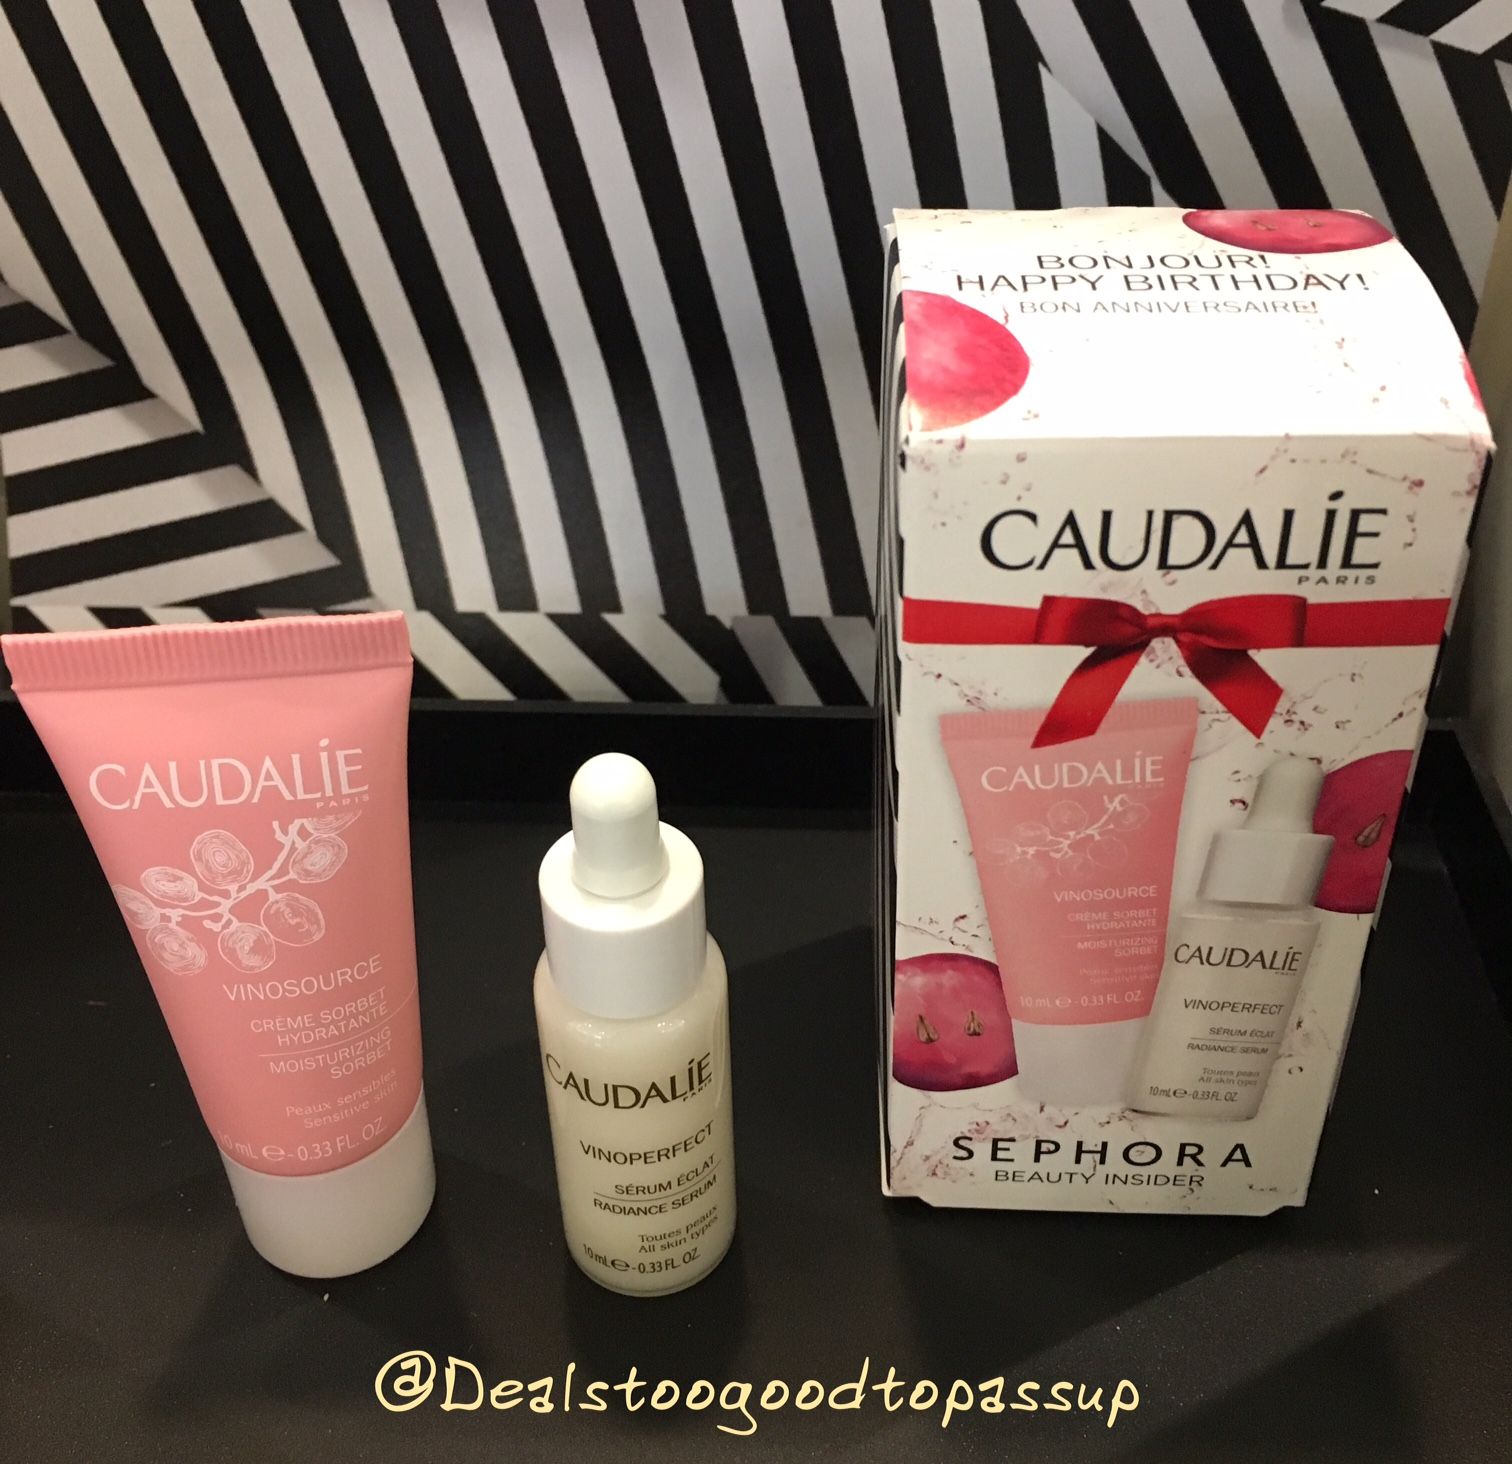 Three Options for the Sephora 2017 Birthday Gift From Caudalie ...